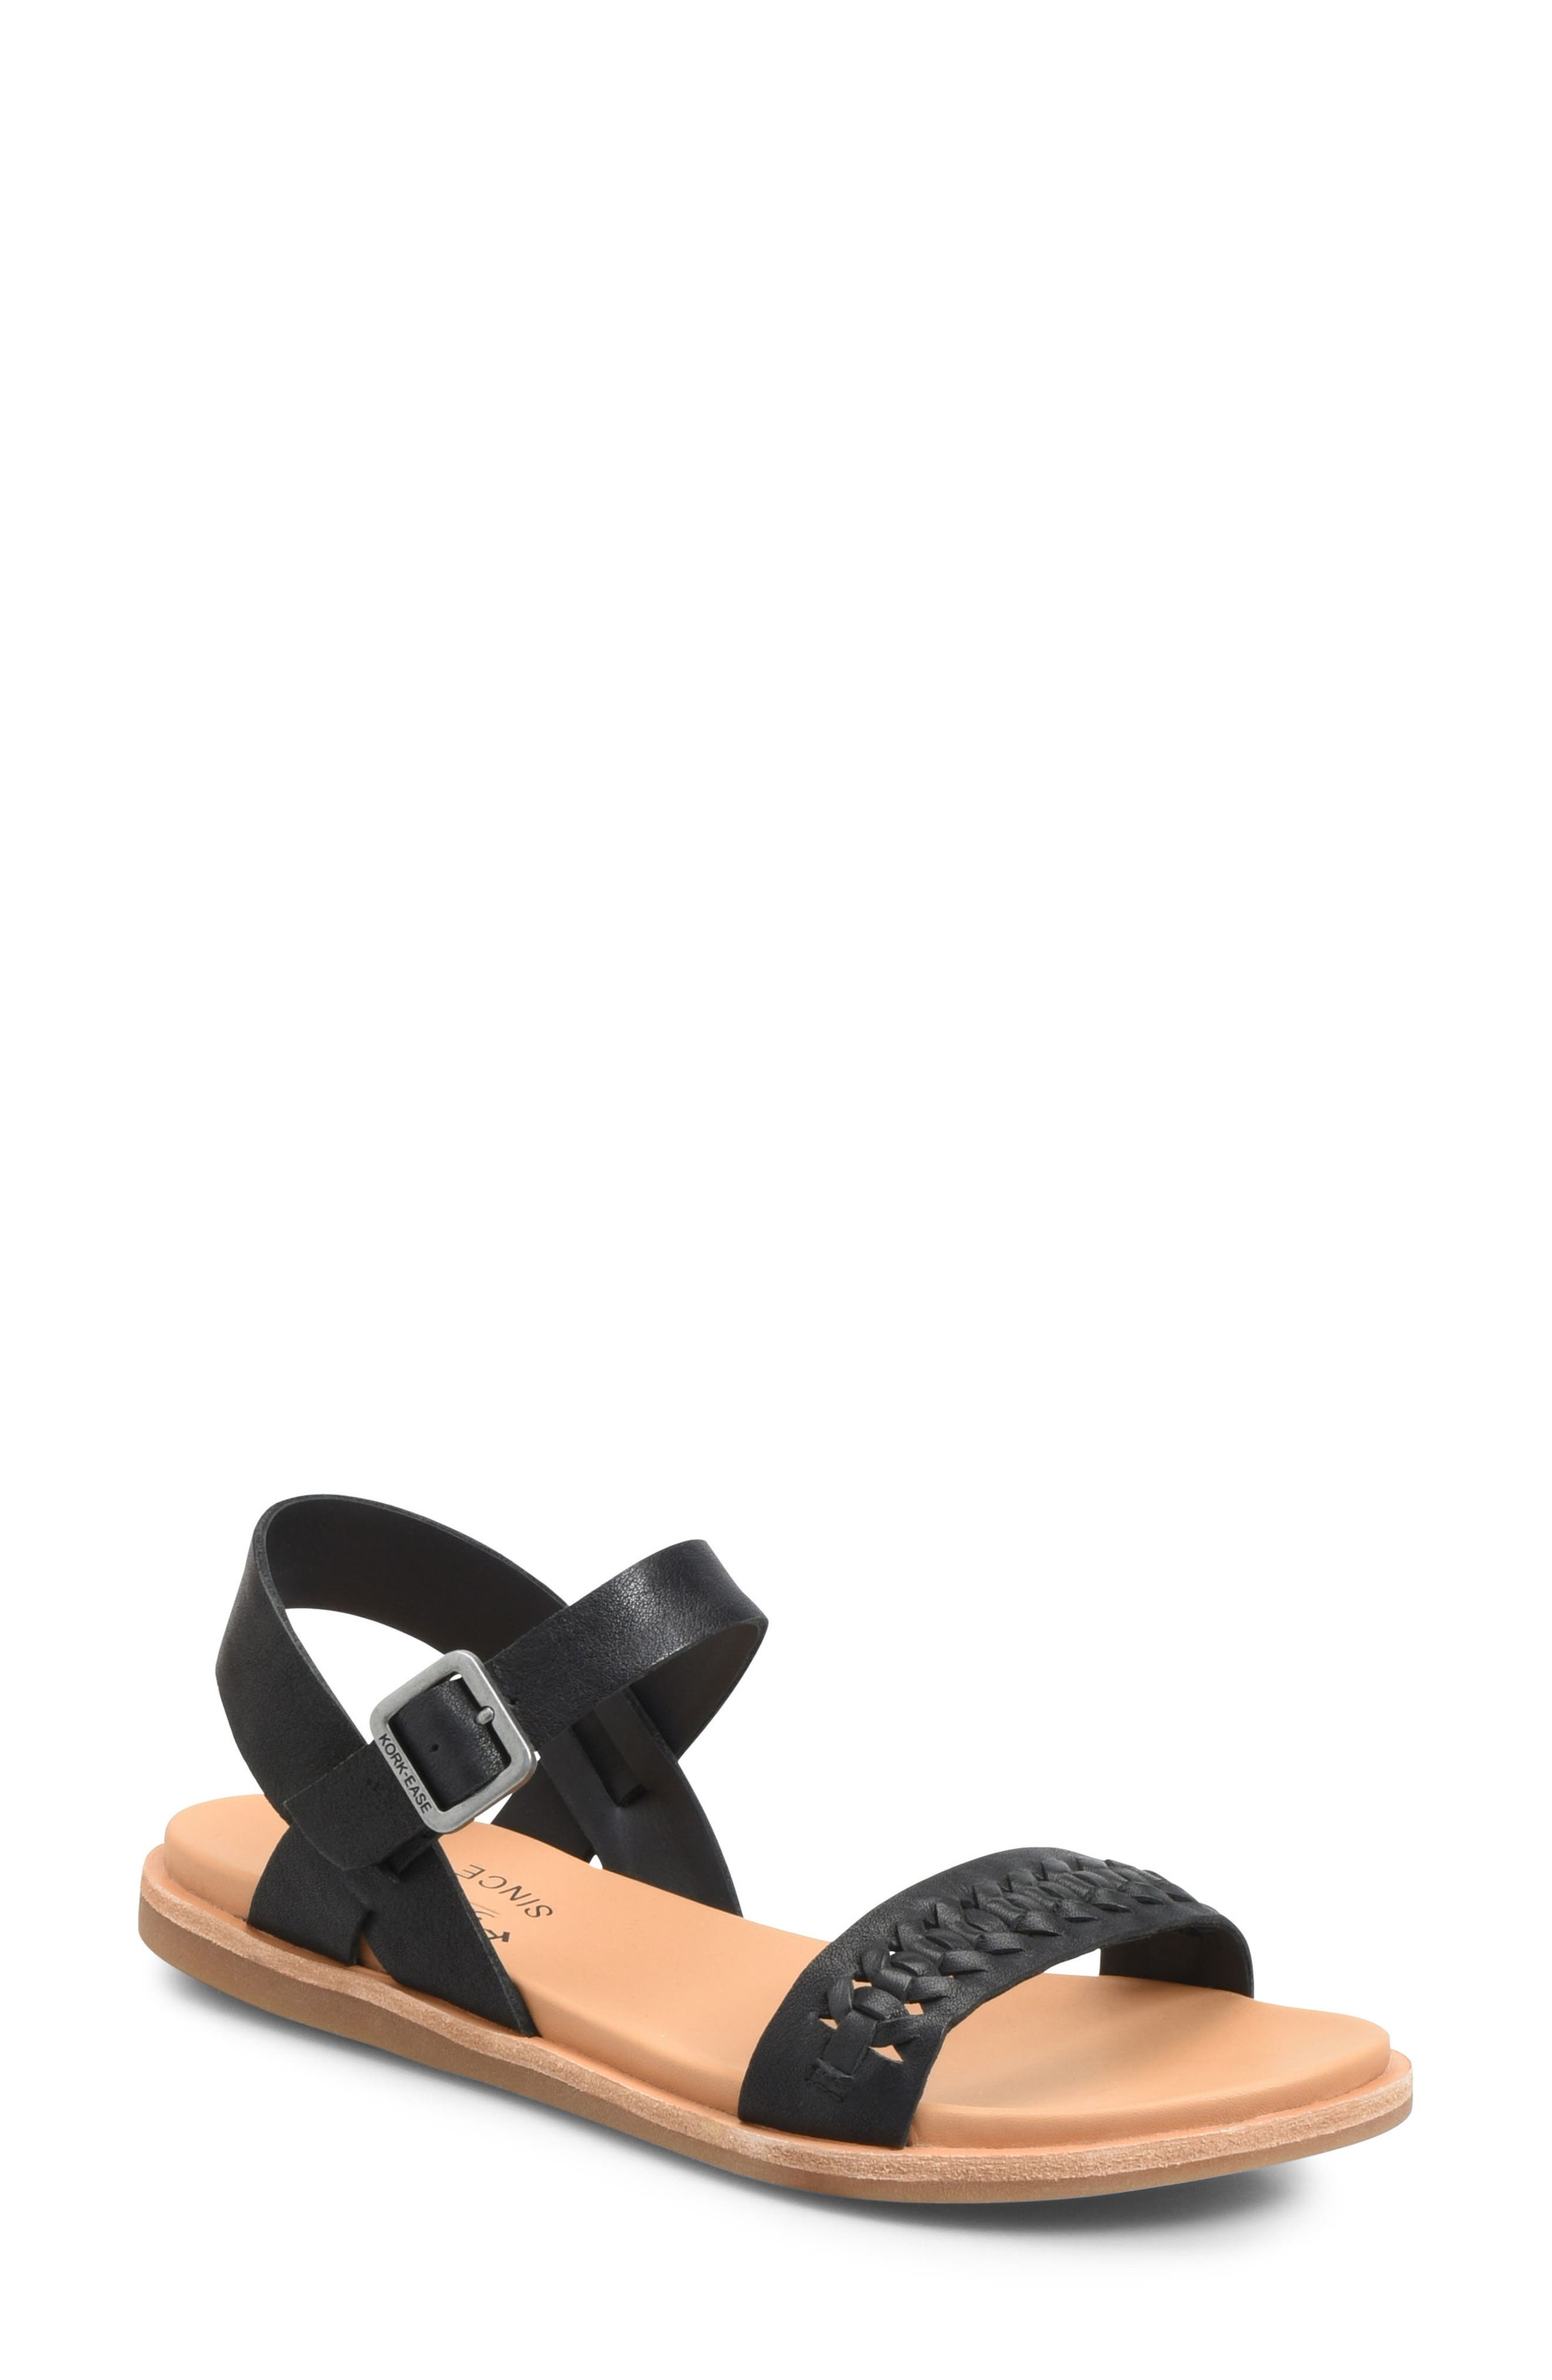 KORK-EASE<SUP>®</SUP>, Yucca Braid Sandal, Main thumbnail 1, color, BLACK LEATHER